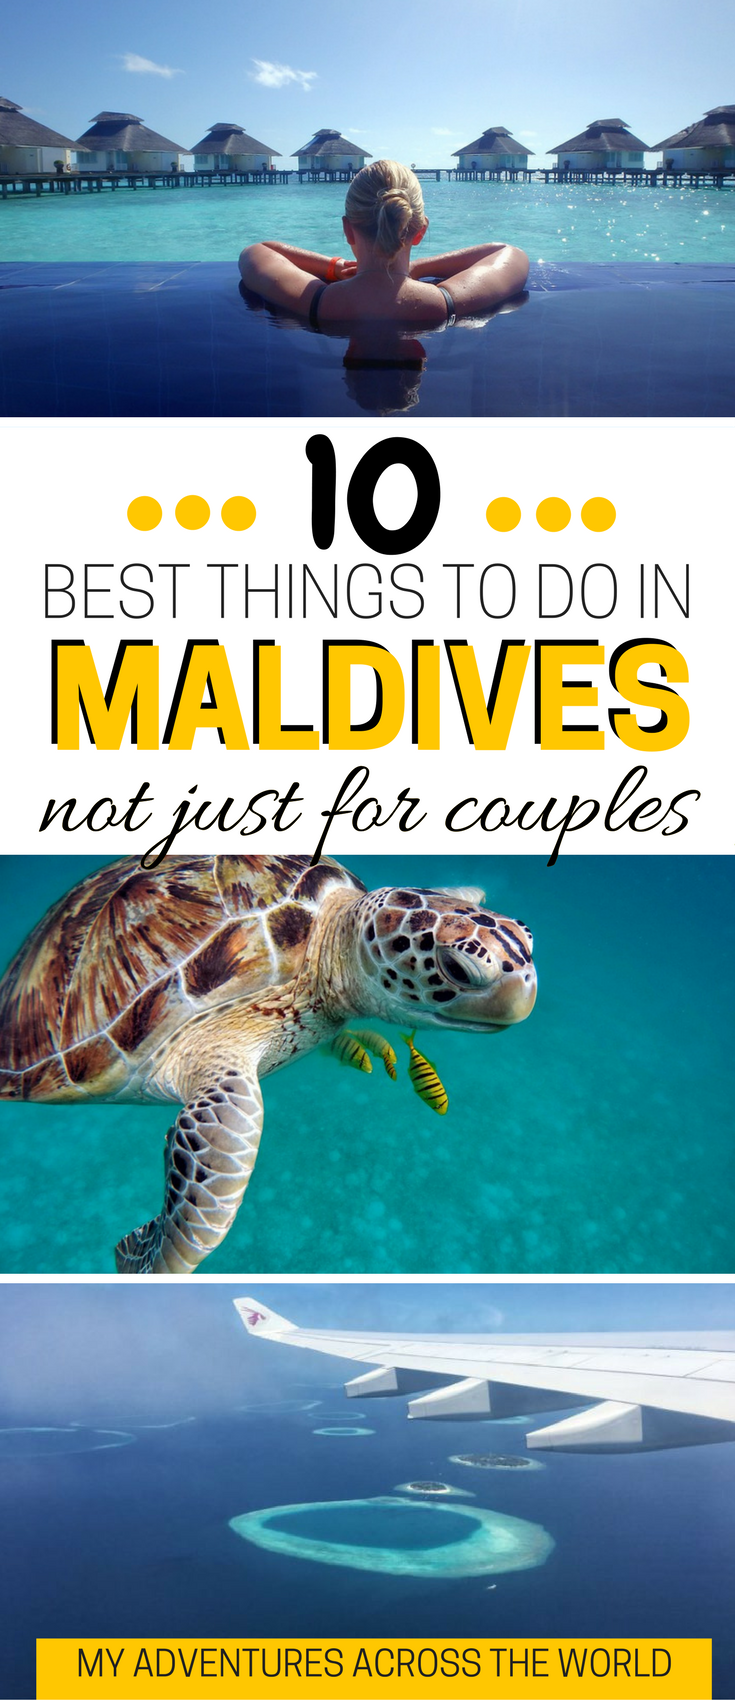 Who said that the Maldives are just for couples? Click for the 10 best things to do in Maldives with or without a partner! | What to do in Maldives | Maldives travel guide | Maldives travel tips  - via @clautavani